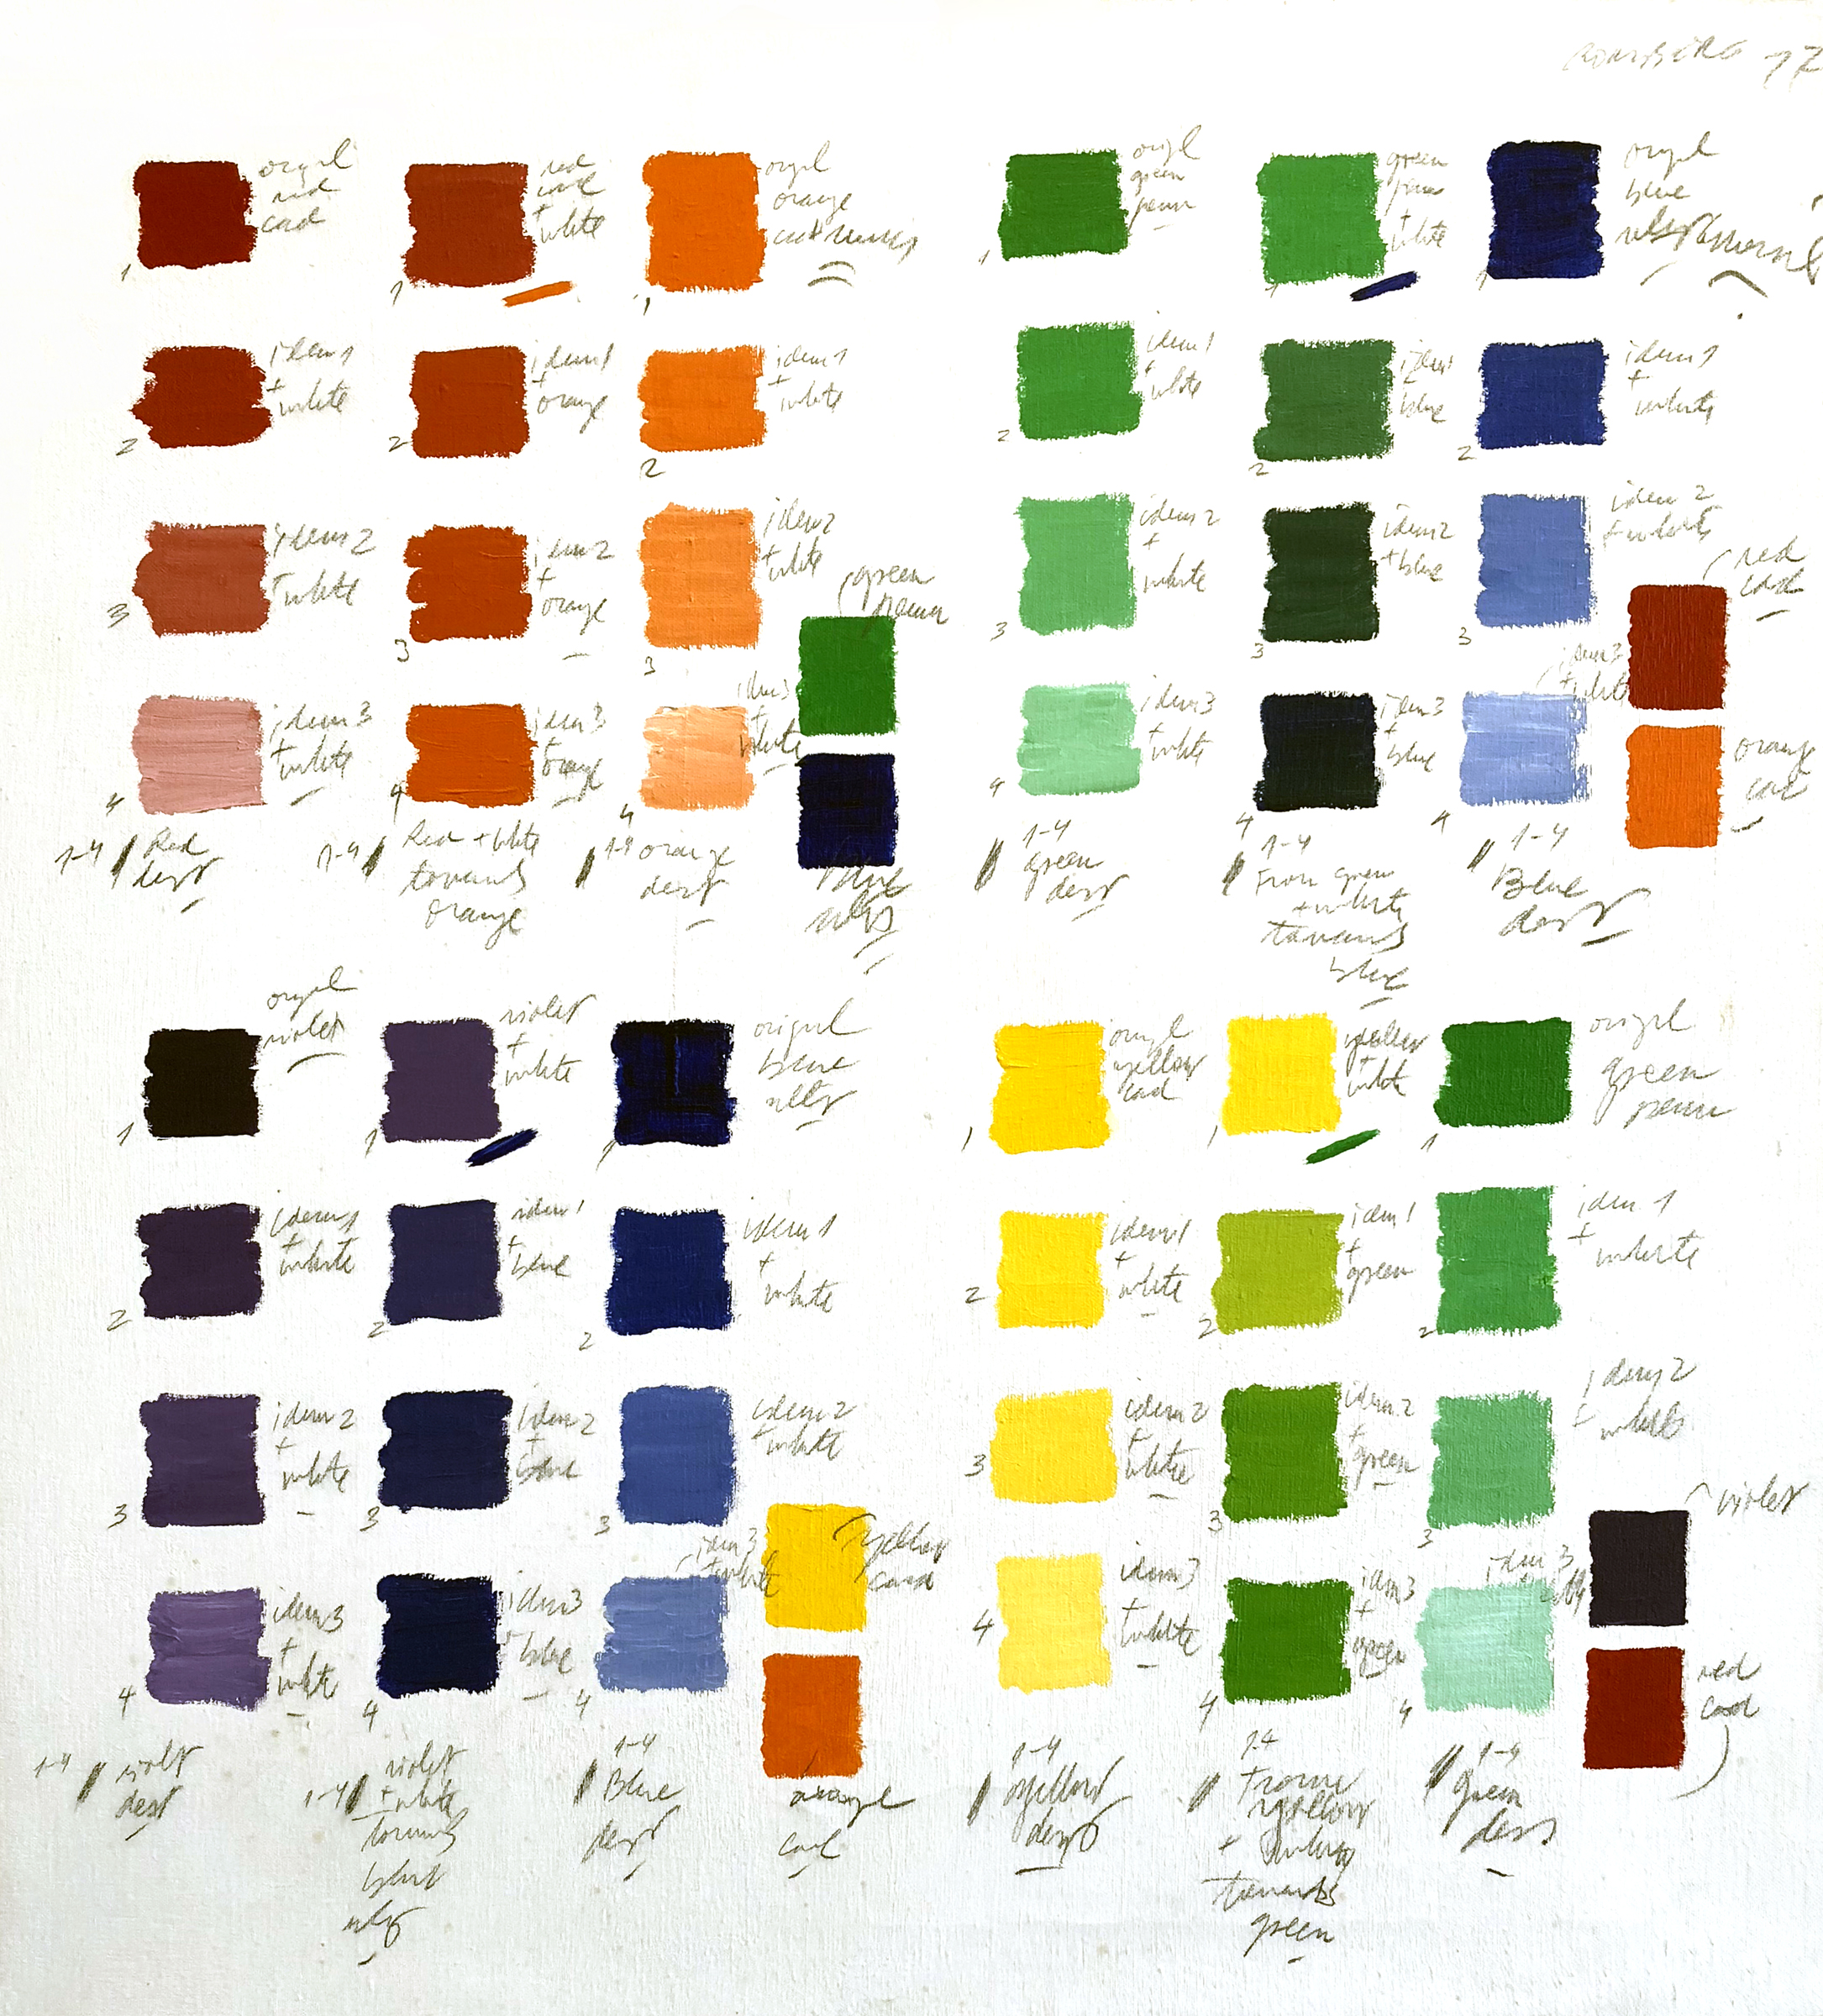 Untitled (Color Classification Series), 28.5 x 27 inches / 72.5 x 68.5 cm, graphite, acrylic on canvas, 1977